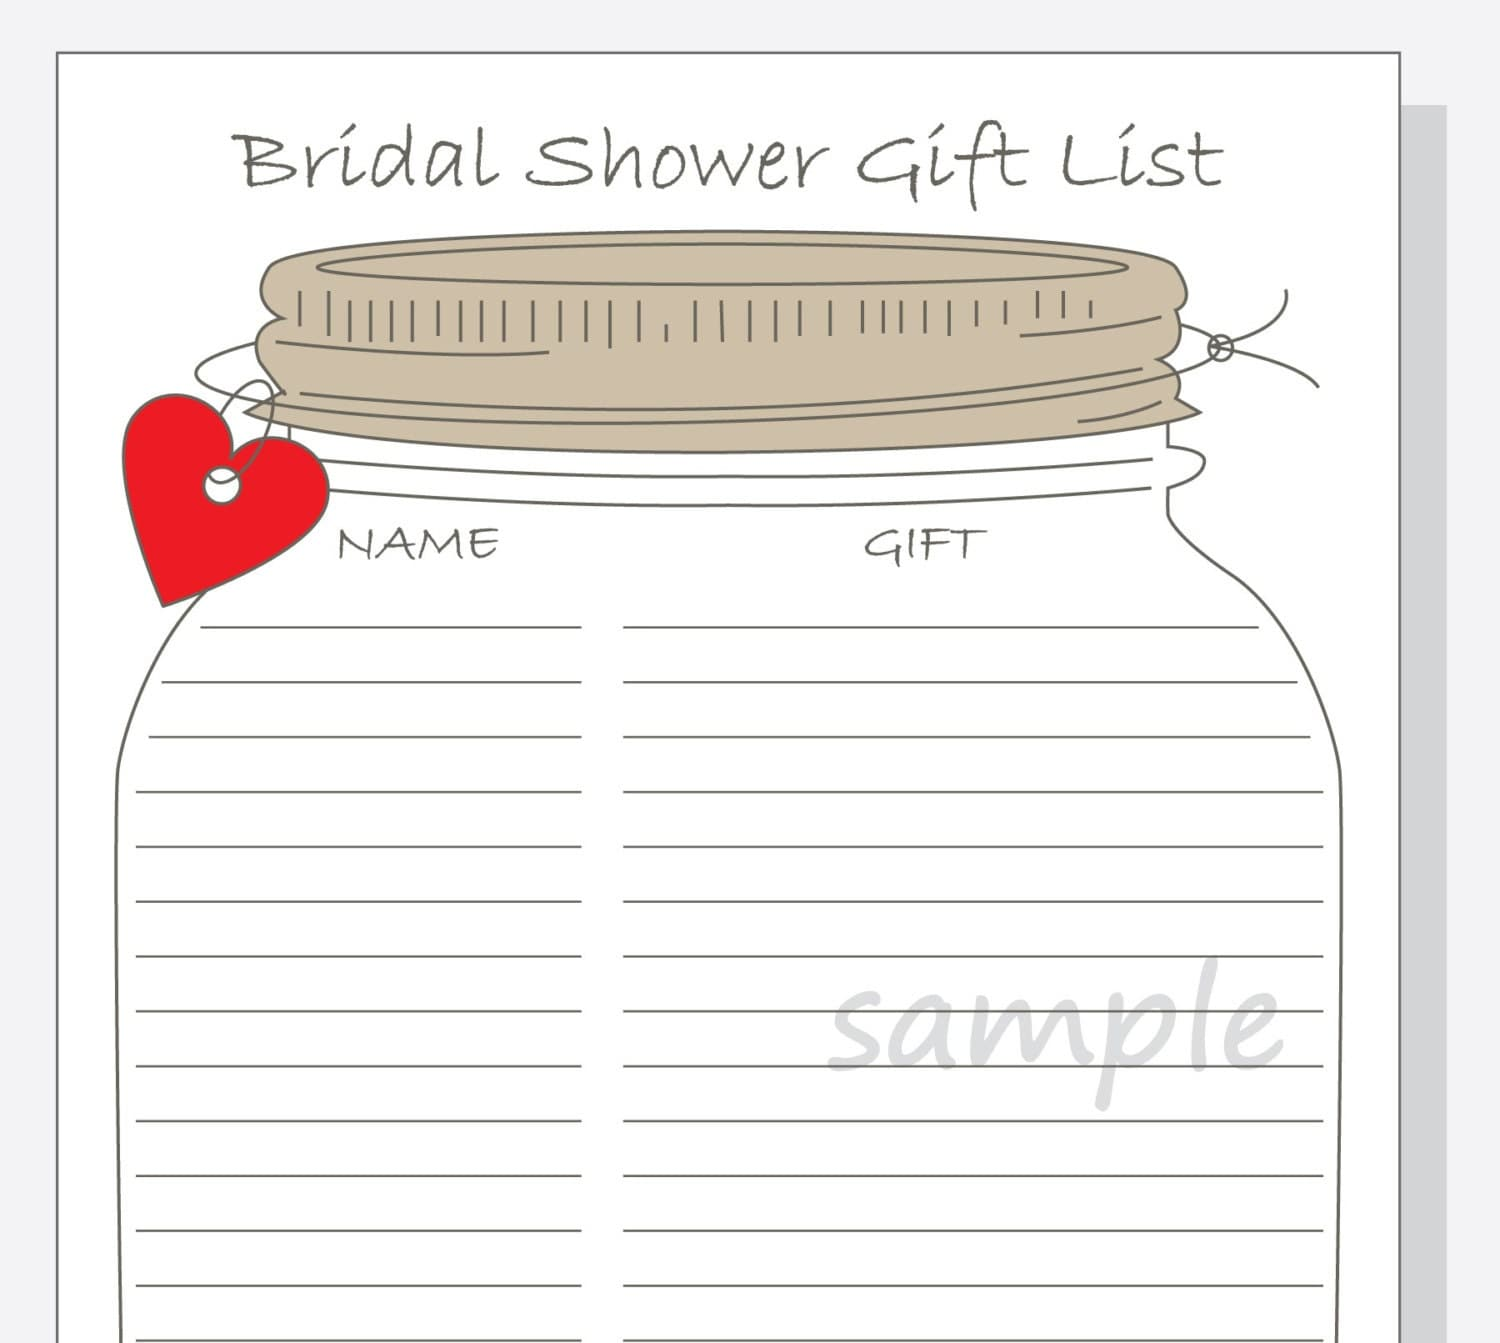 Bridal shower gift list printable diy mason jar design with for Wedding shower gift list template